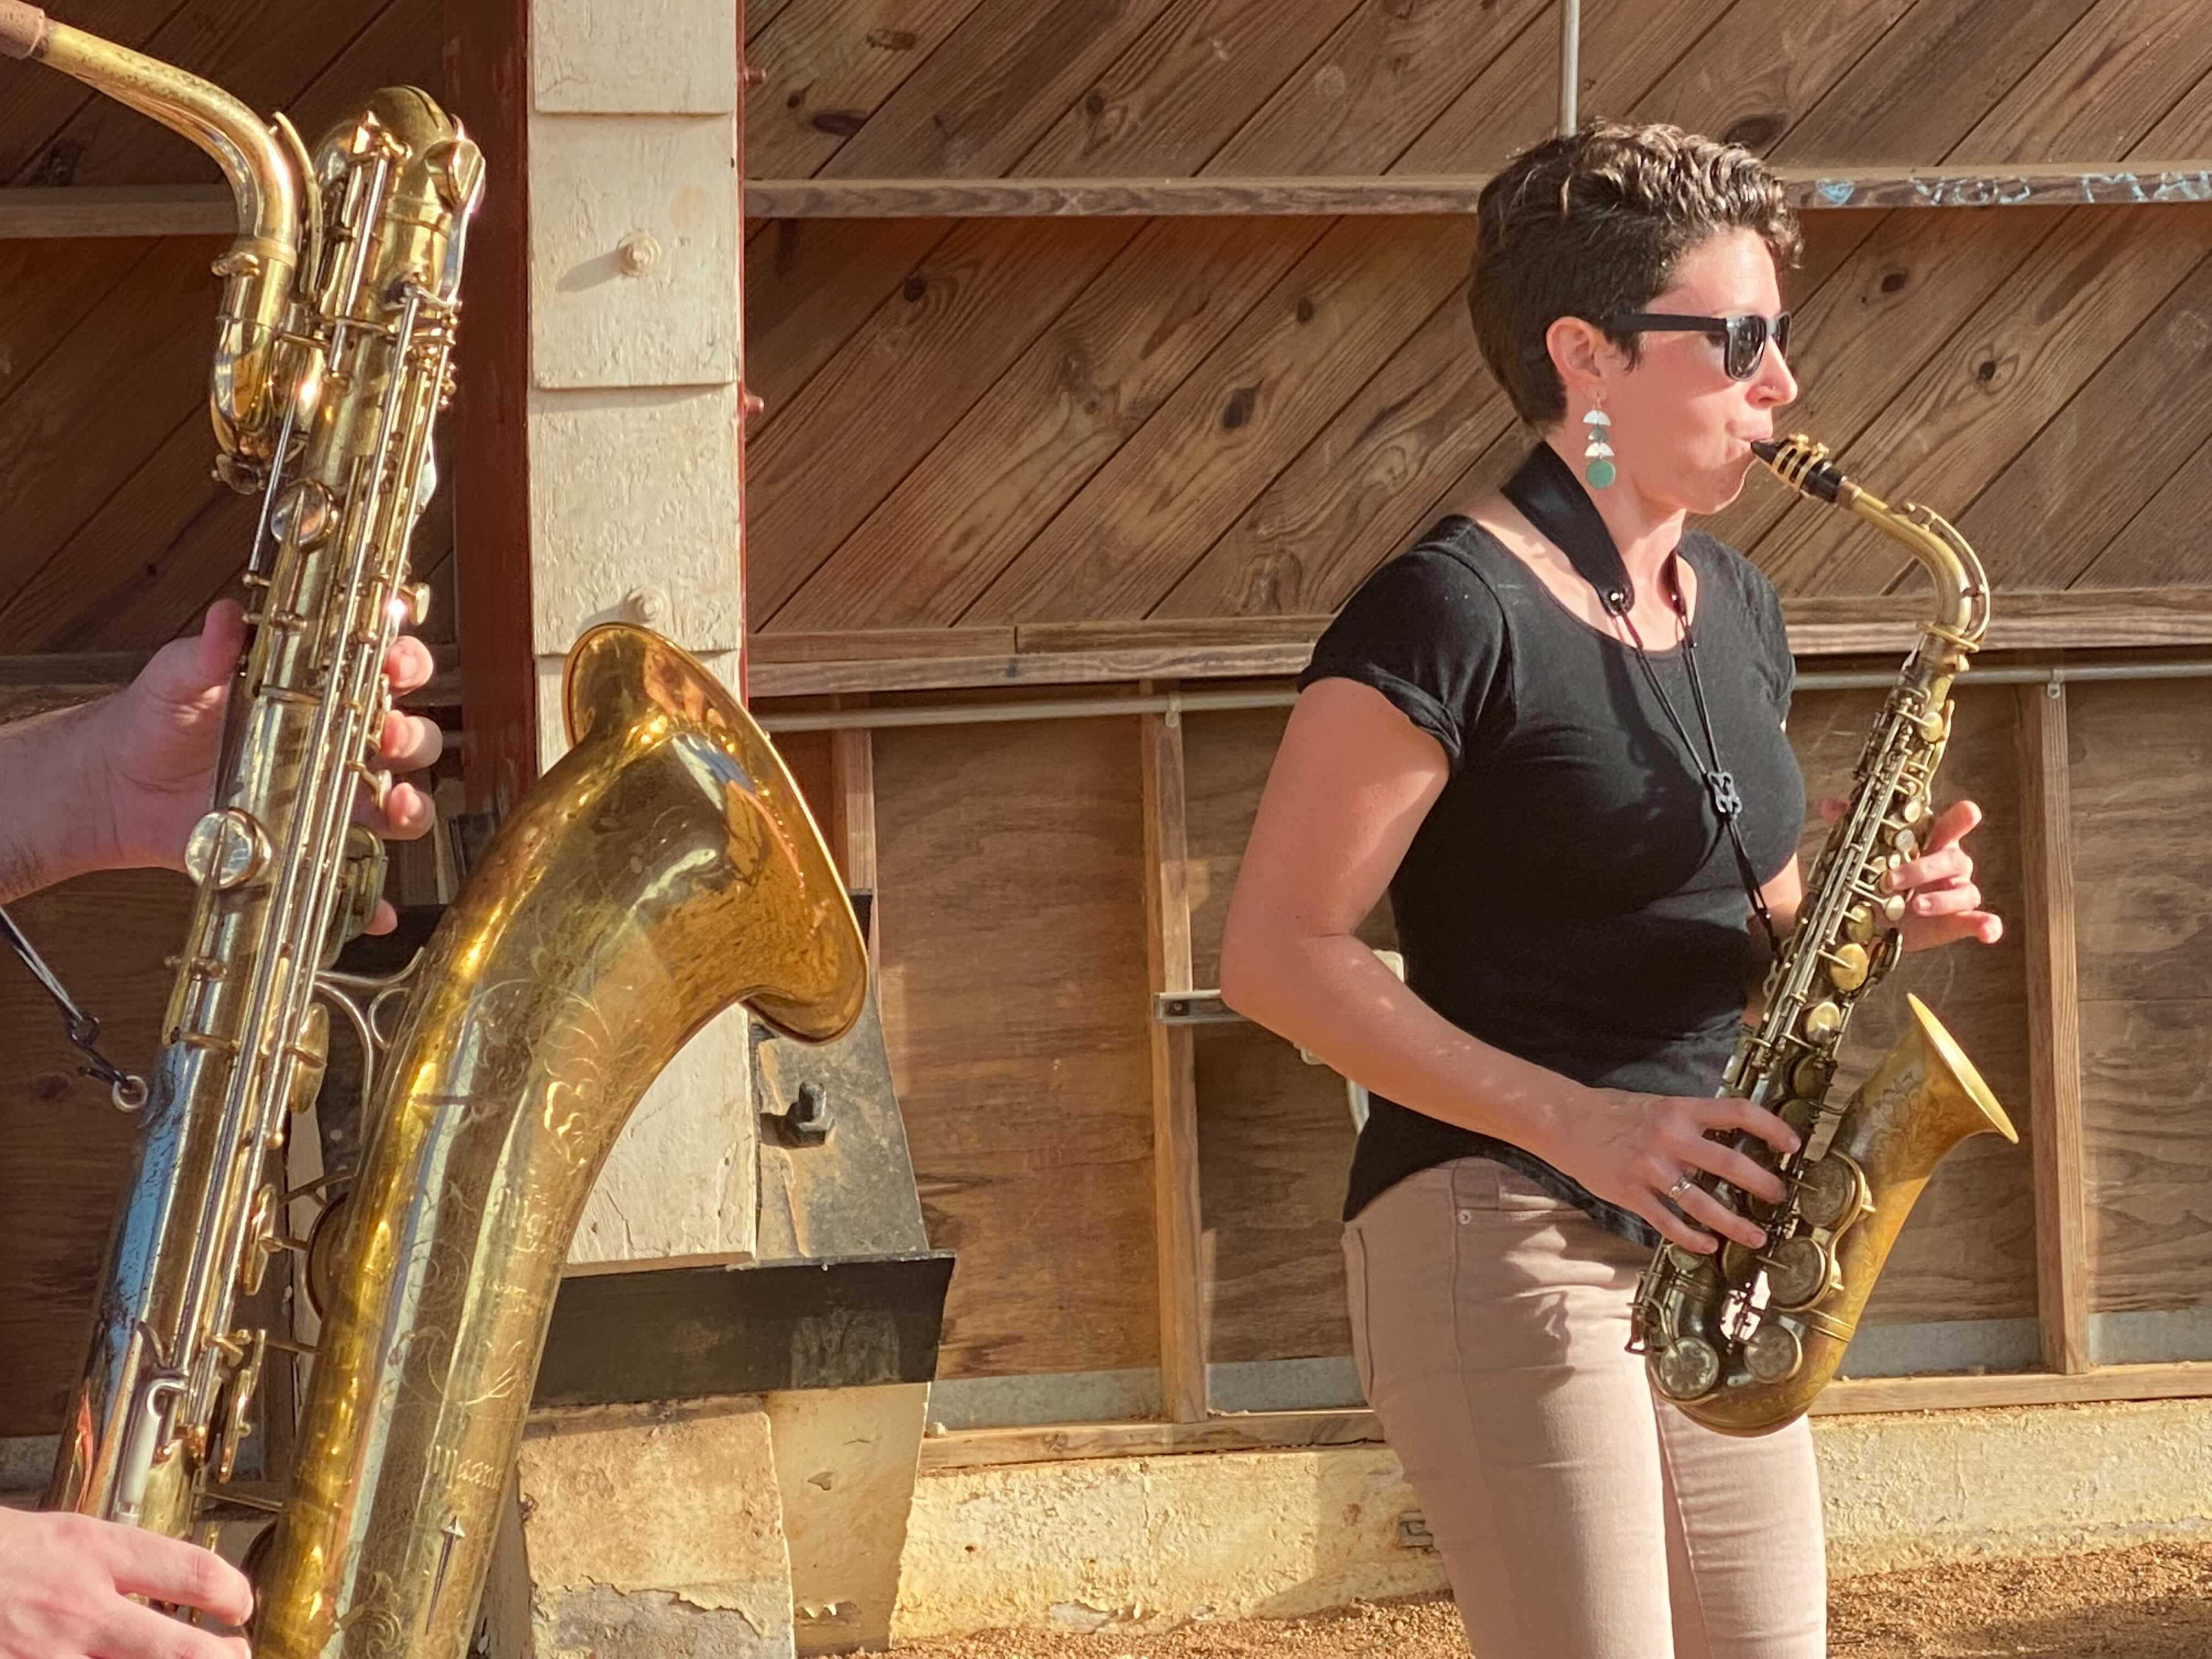 Meow Now Brass Band says they've canceled all their indoor shows as COVID-19 cases rise in Austin-Travis County (KXAN Photo/Tahera Rahman)